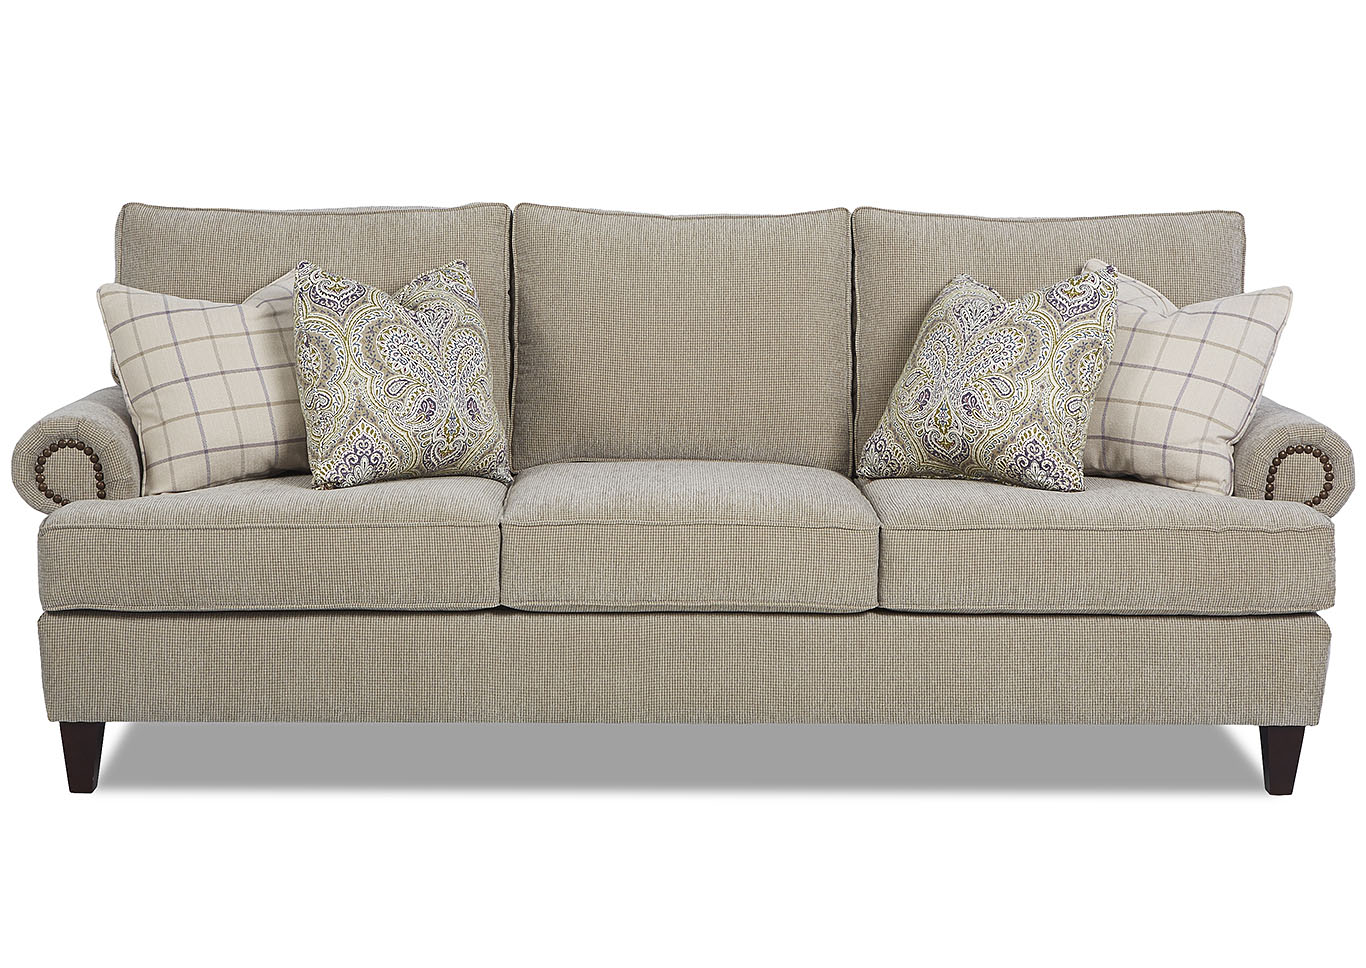 Madison Smoke Gray Stationary Fabric Sofa,Klaussner Home Furnishings